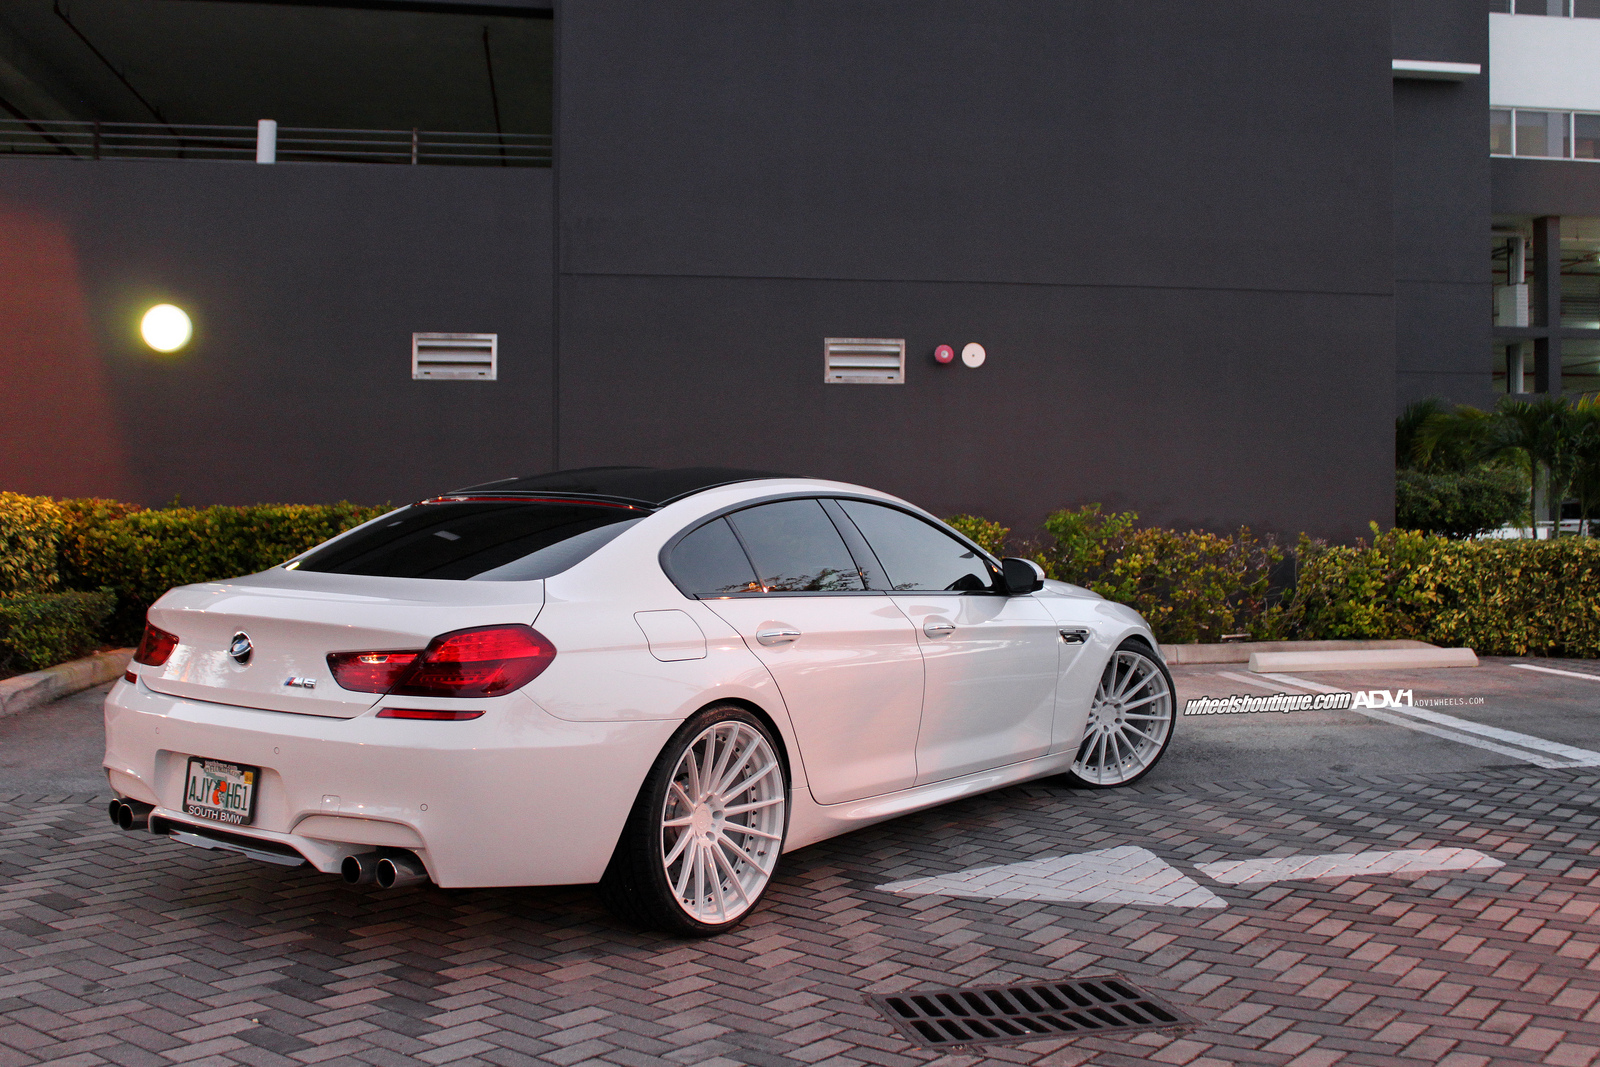 BMW M6 Gran Coupe >> White Is Back in Fashion: BMW M6 Gran Coupe Proves It ...